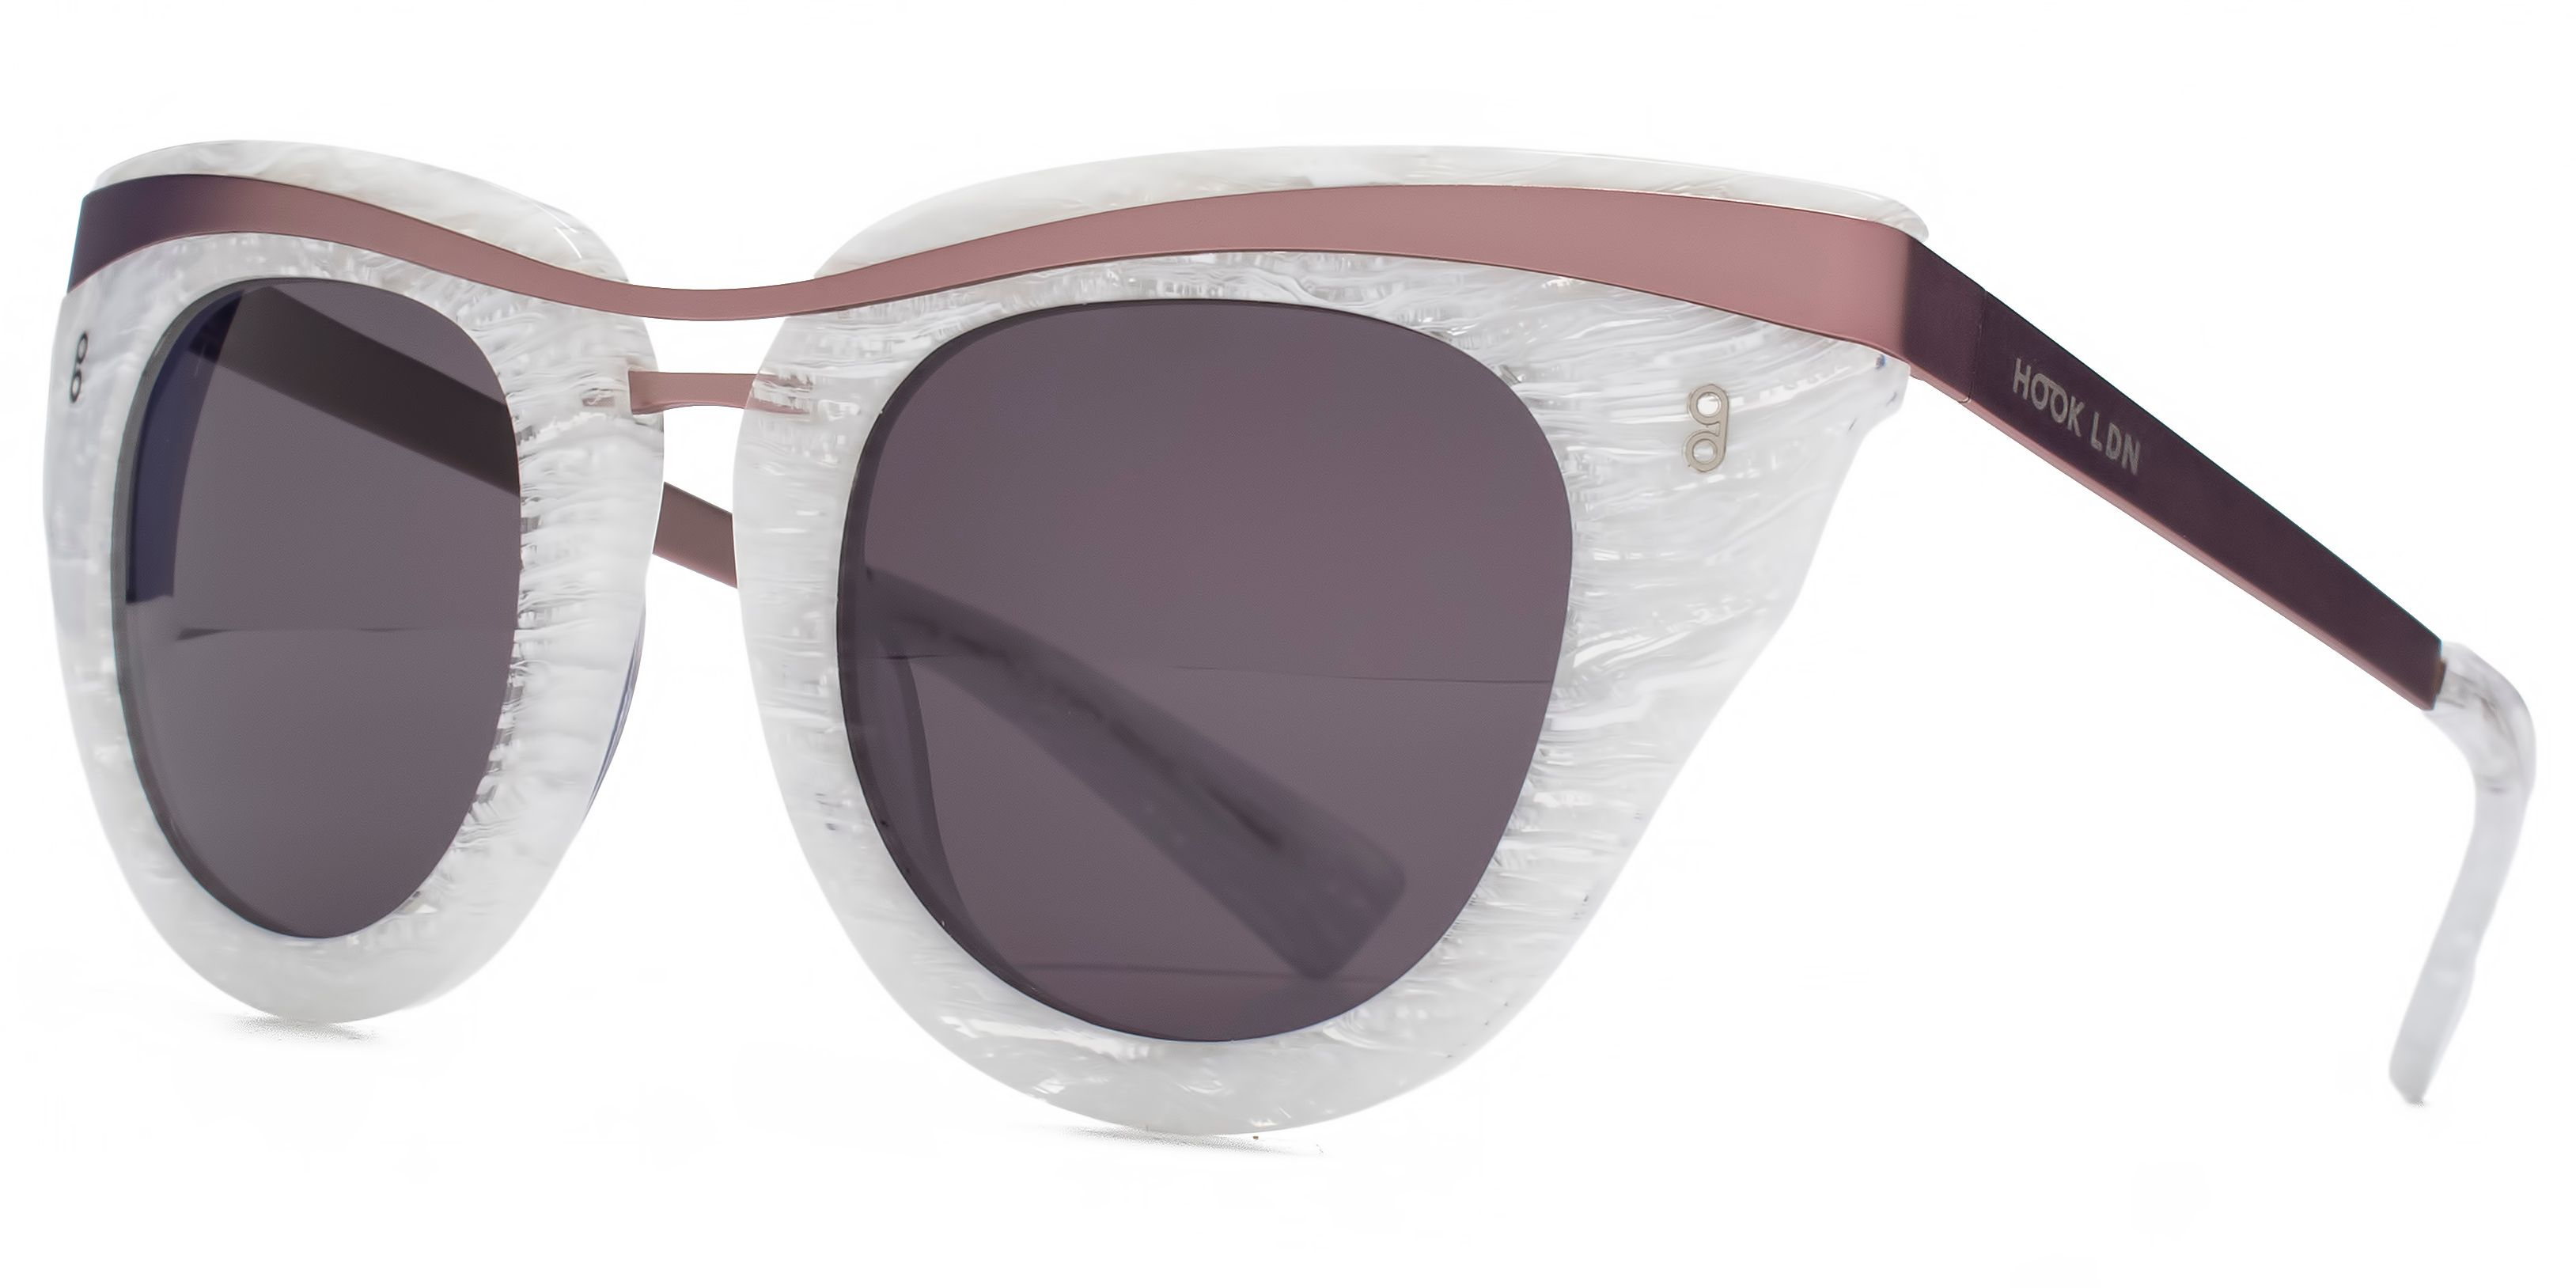 Hook LDN 26HK010- WHT Cateye Sunglasses